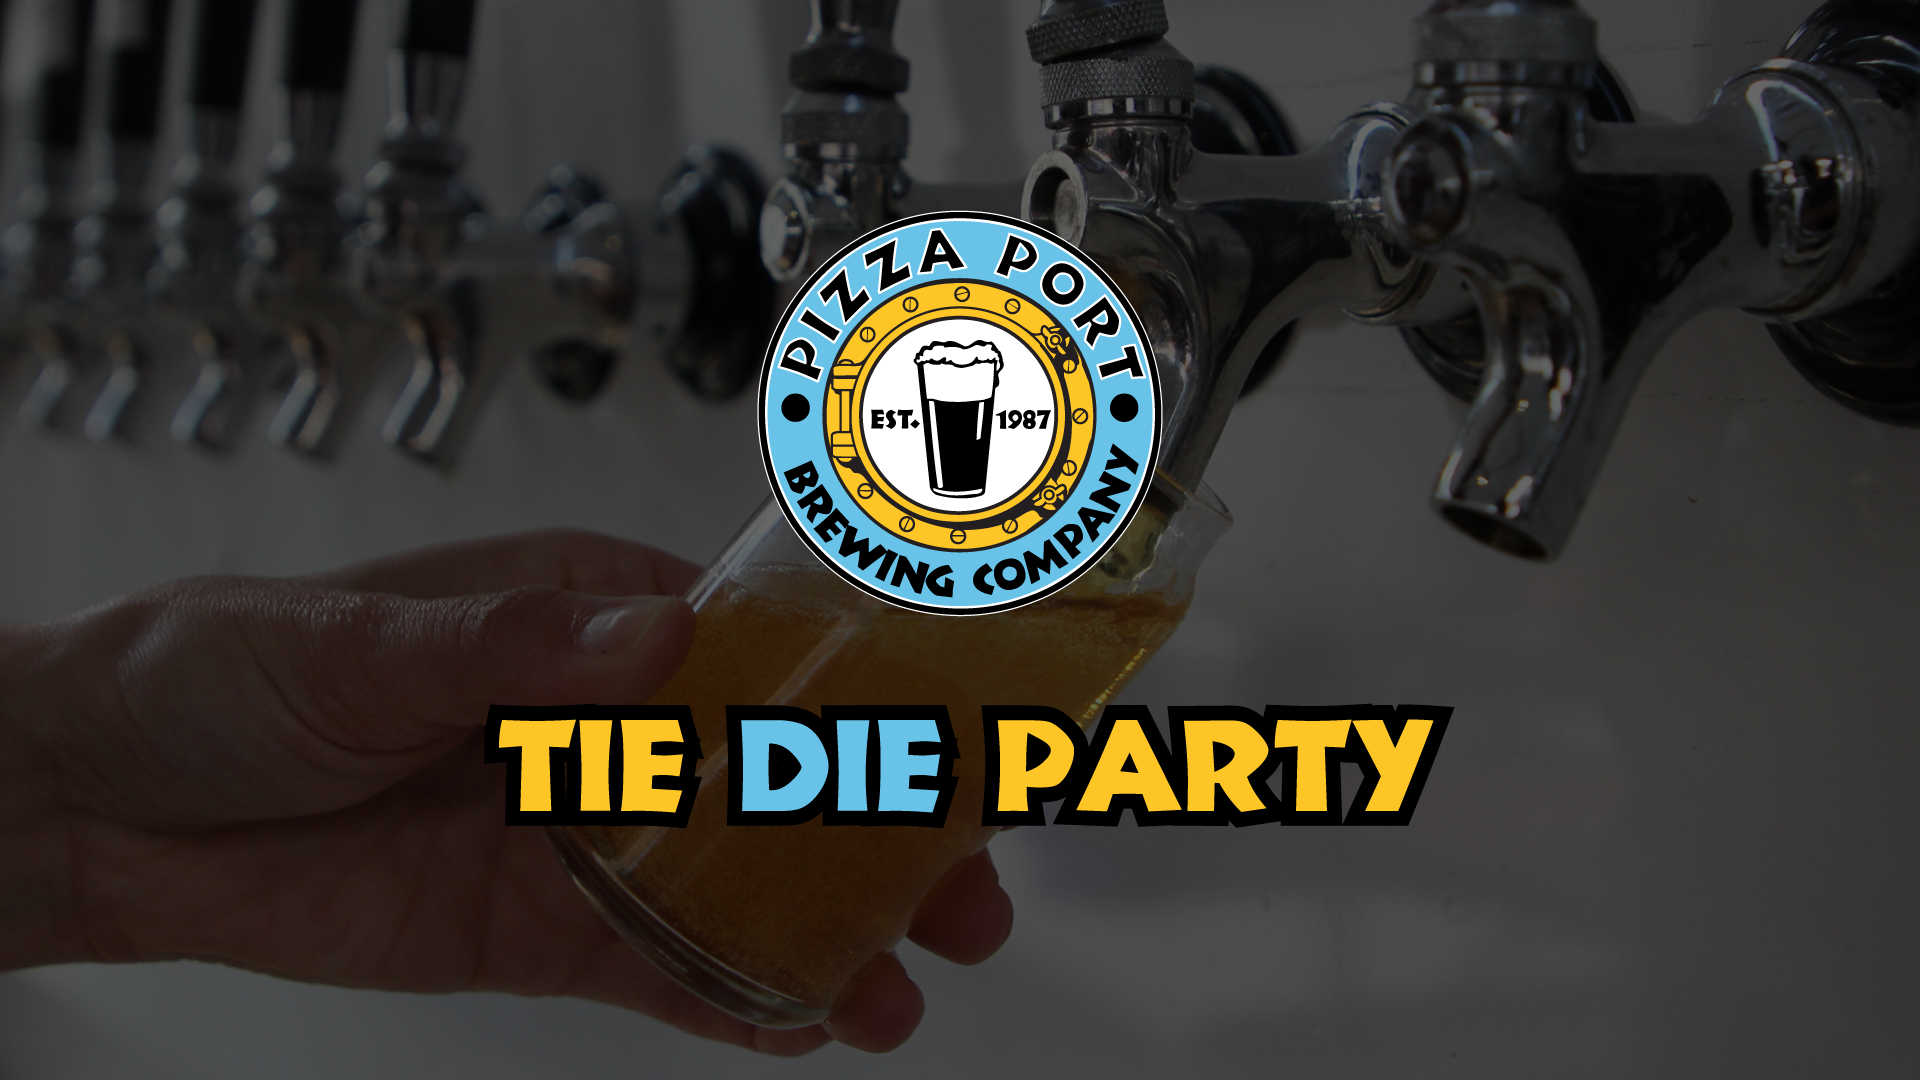 Tie Dye Party - Silicon Valley Beer Week